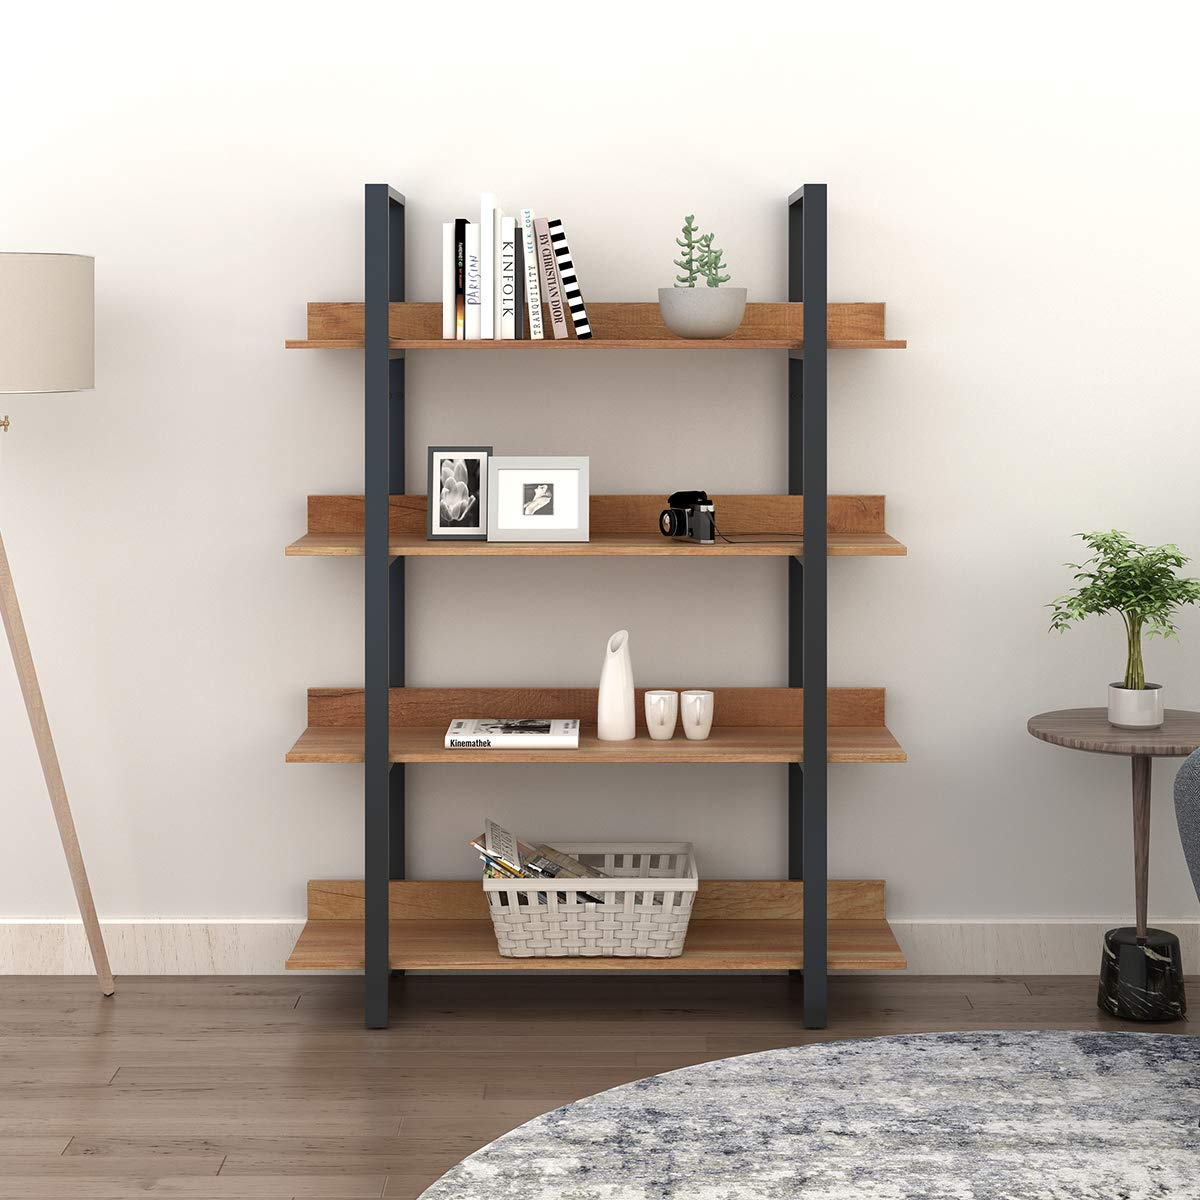 WLIVE 4-Tier Bookcase, Vintage Industrial Bookshelf, Wood and Metal Book Shelf Furniture, Organizer for Home and Office, Walnut